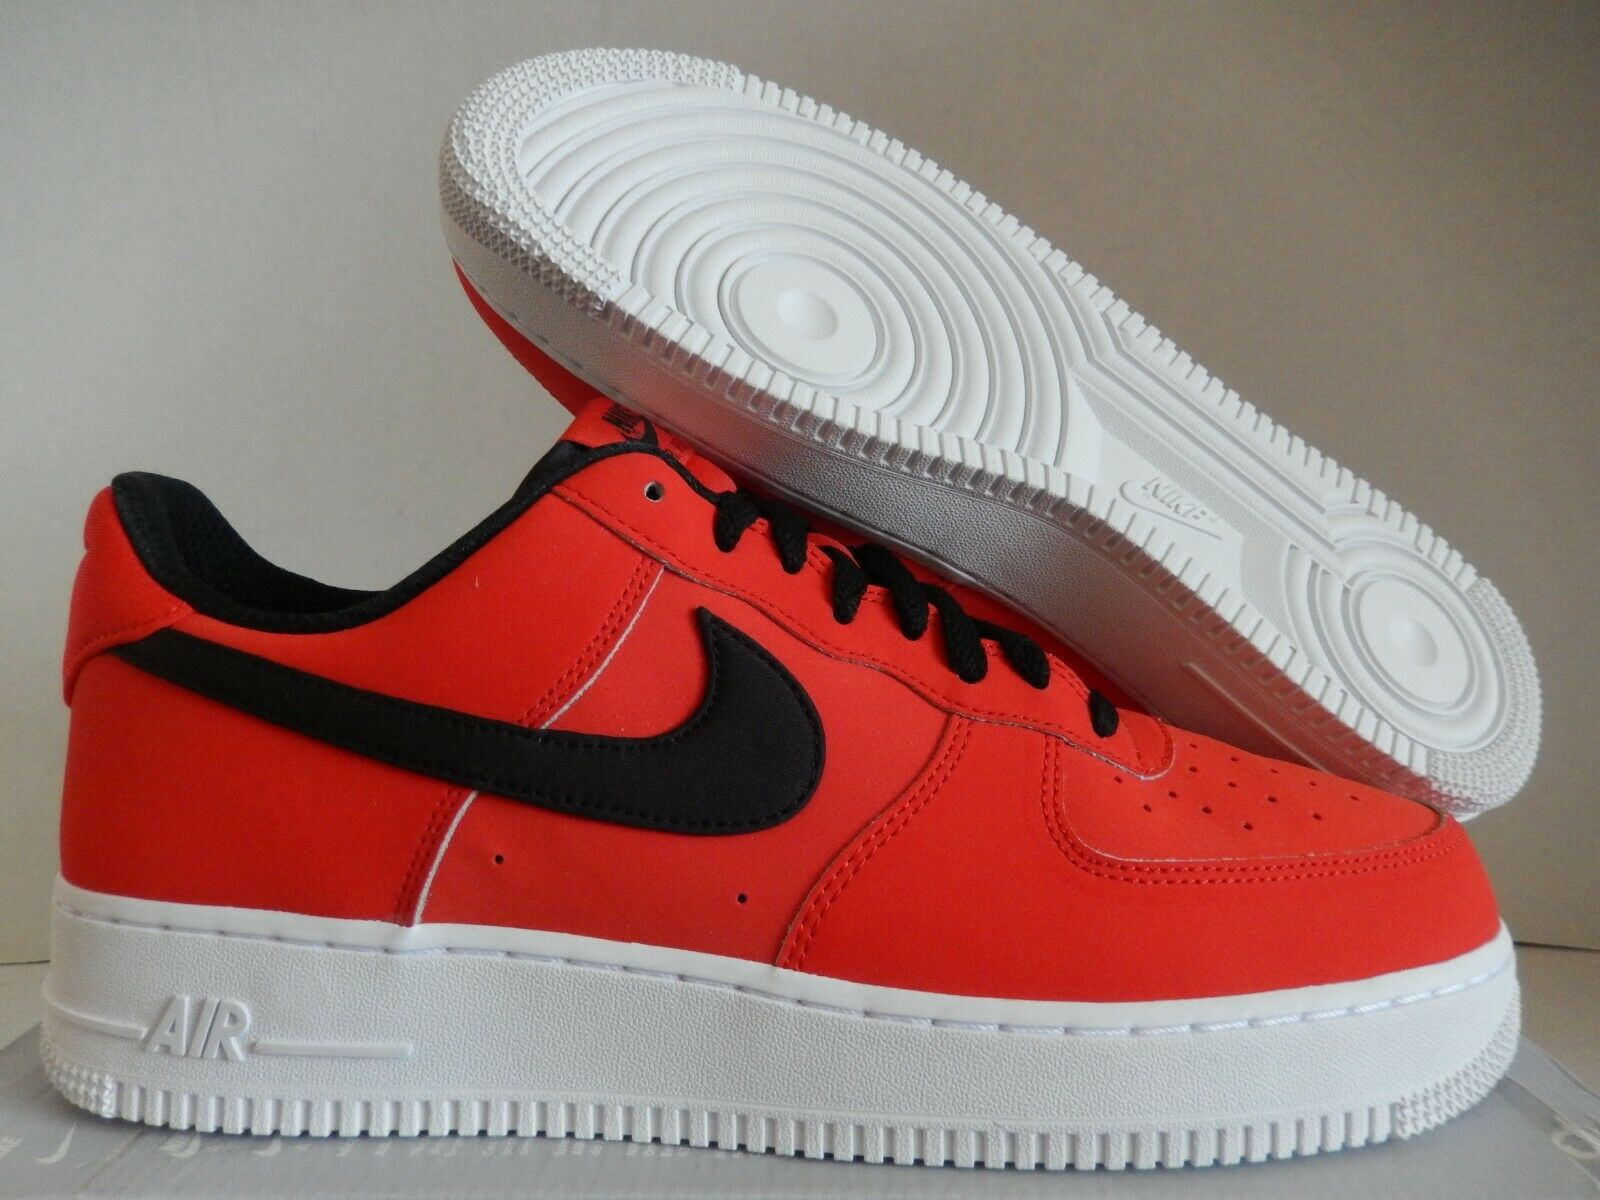 NIKE AIR FORCE 1 07 LEATHER HABAblack RED-BLACK-WHITE SZ 14